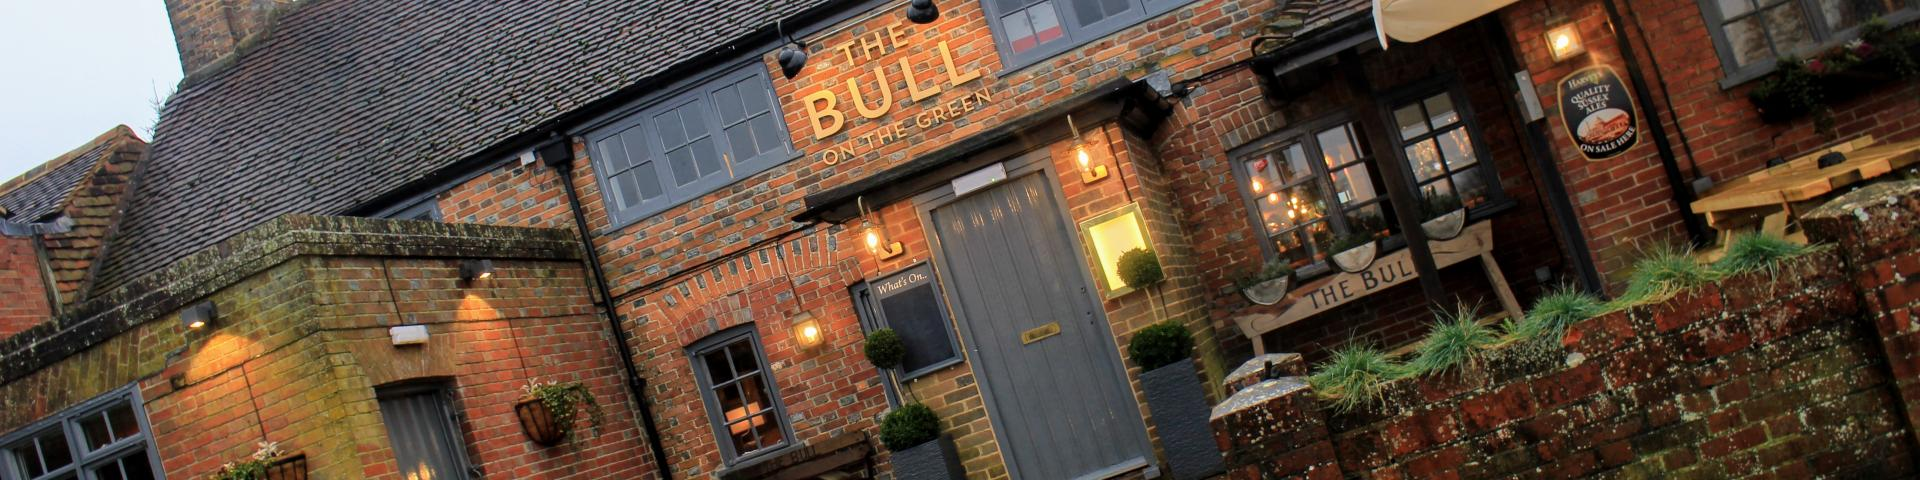 The Bull on the Green, Newick